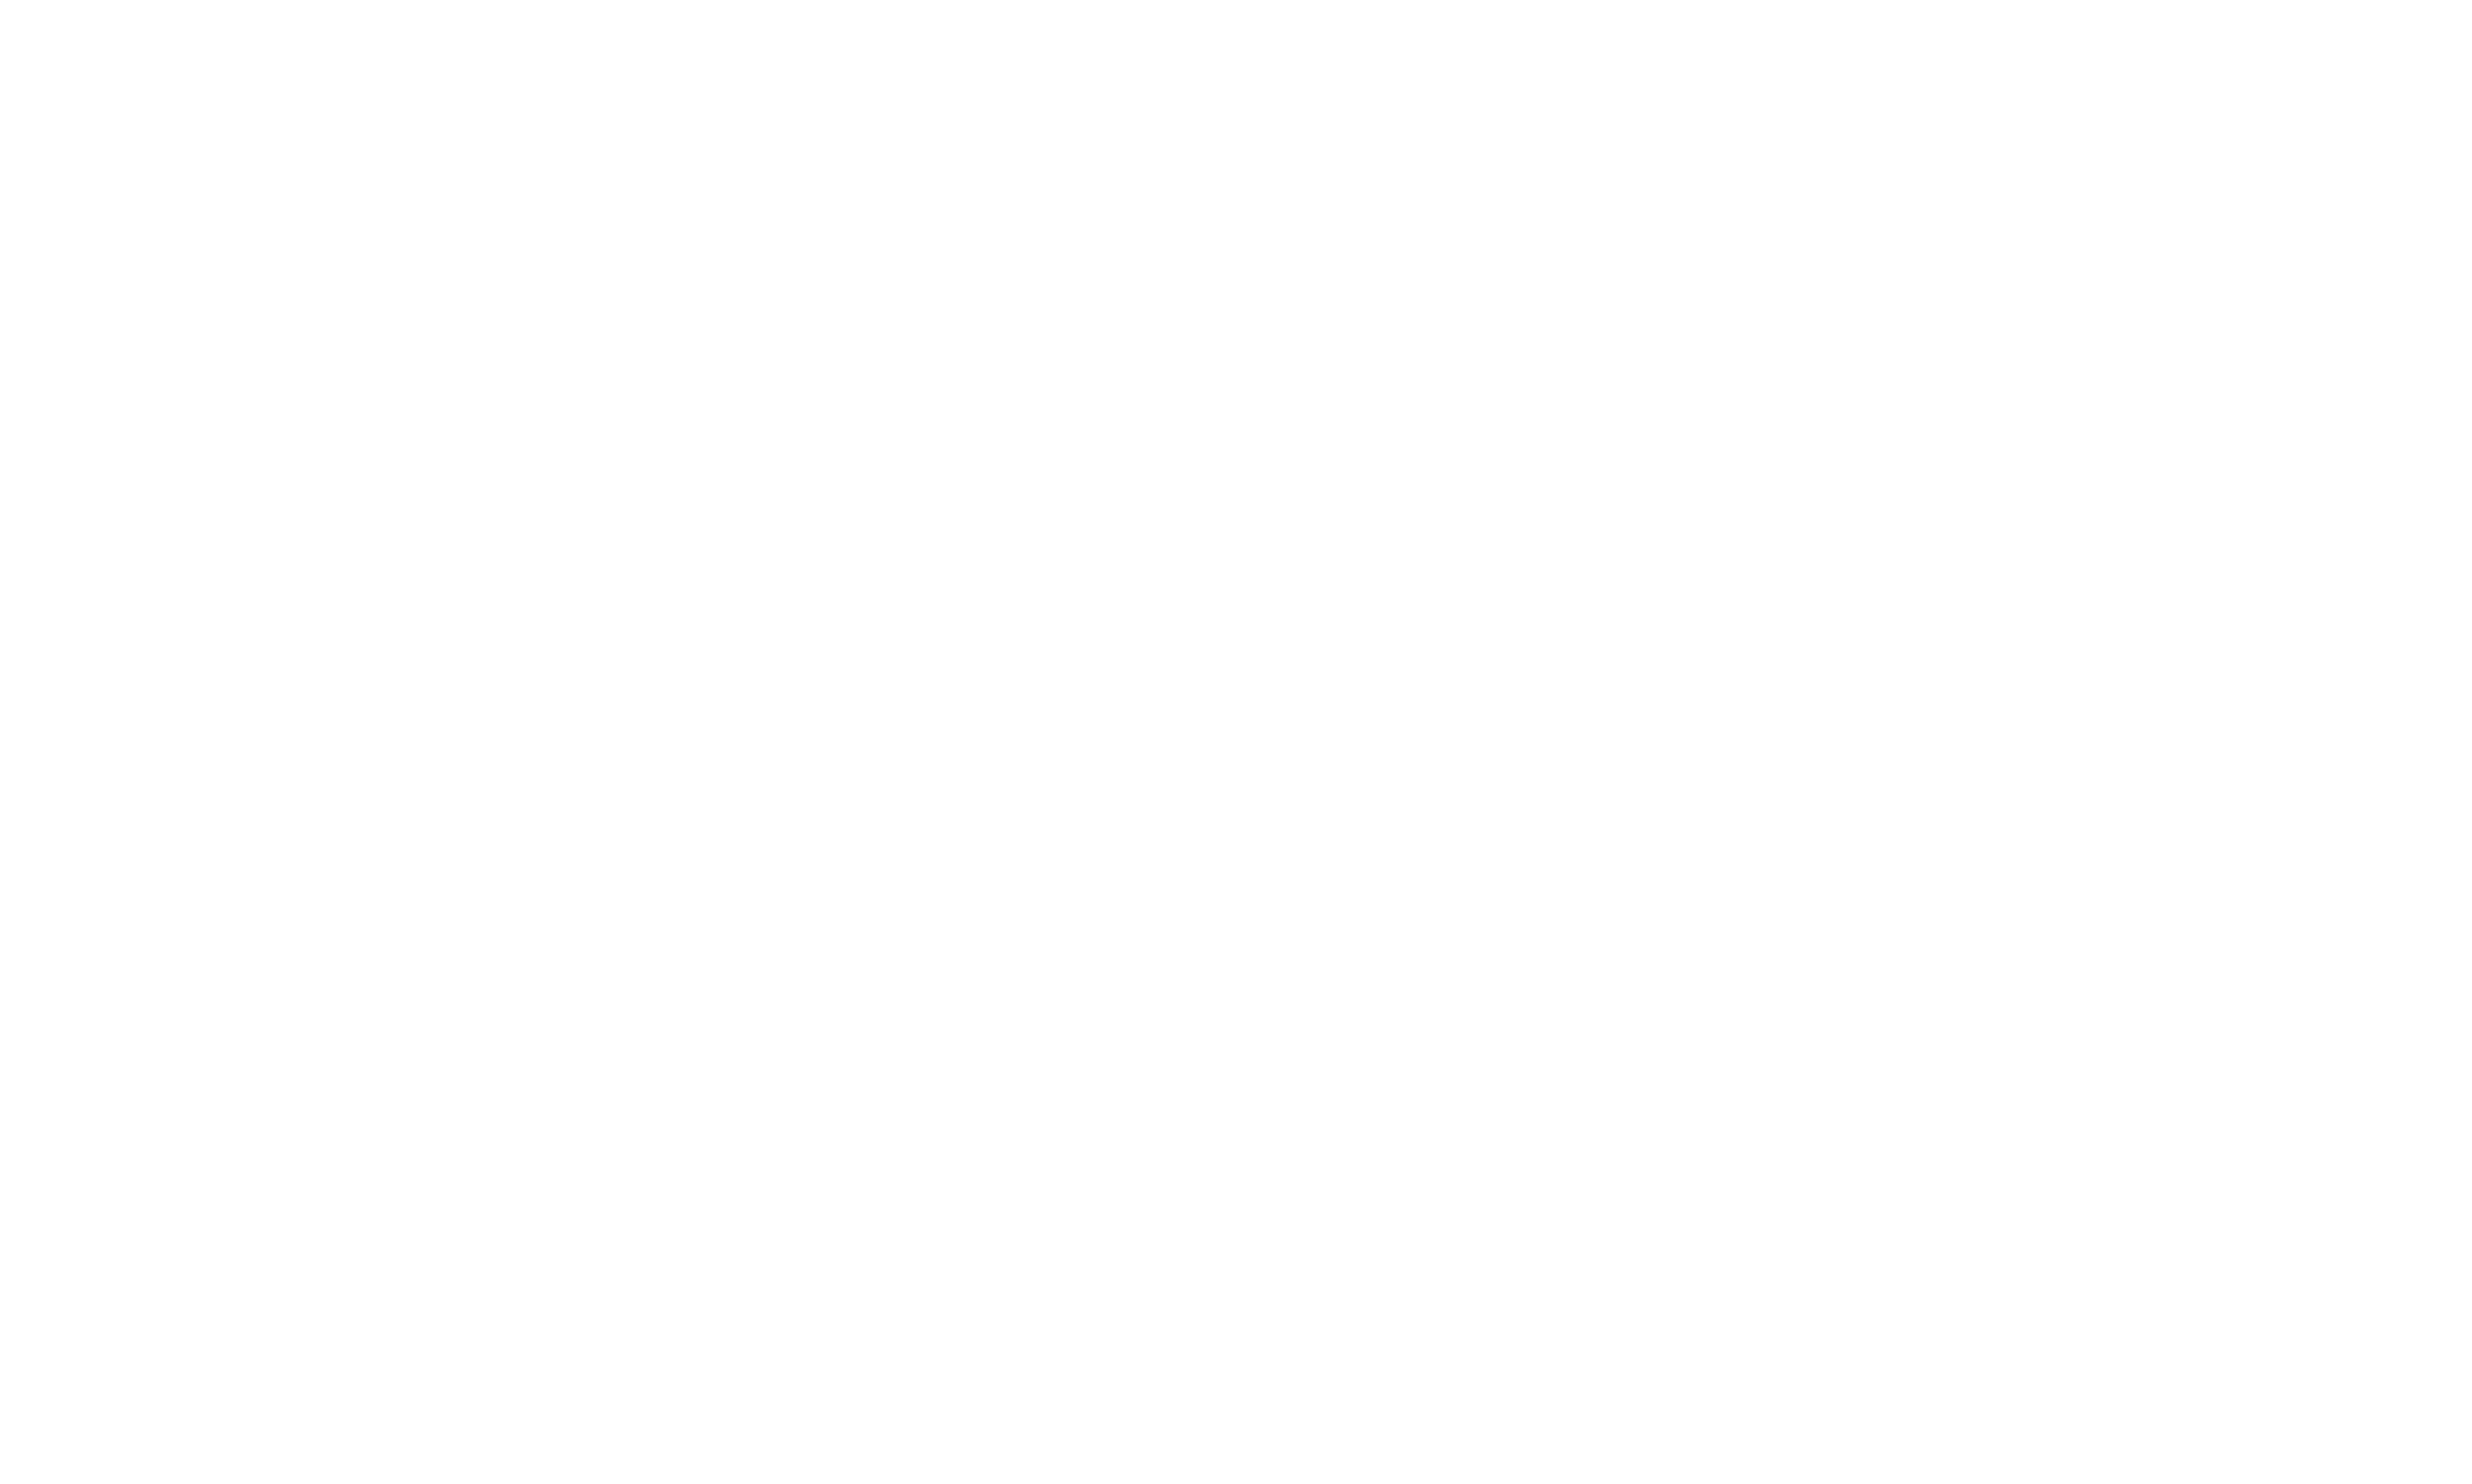 EFF Logo Image with Wings